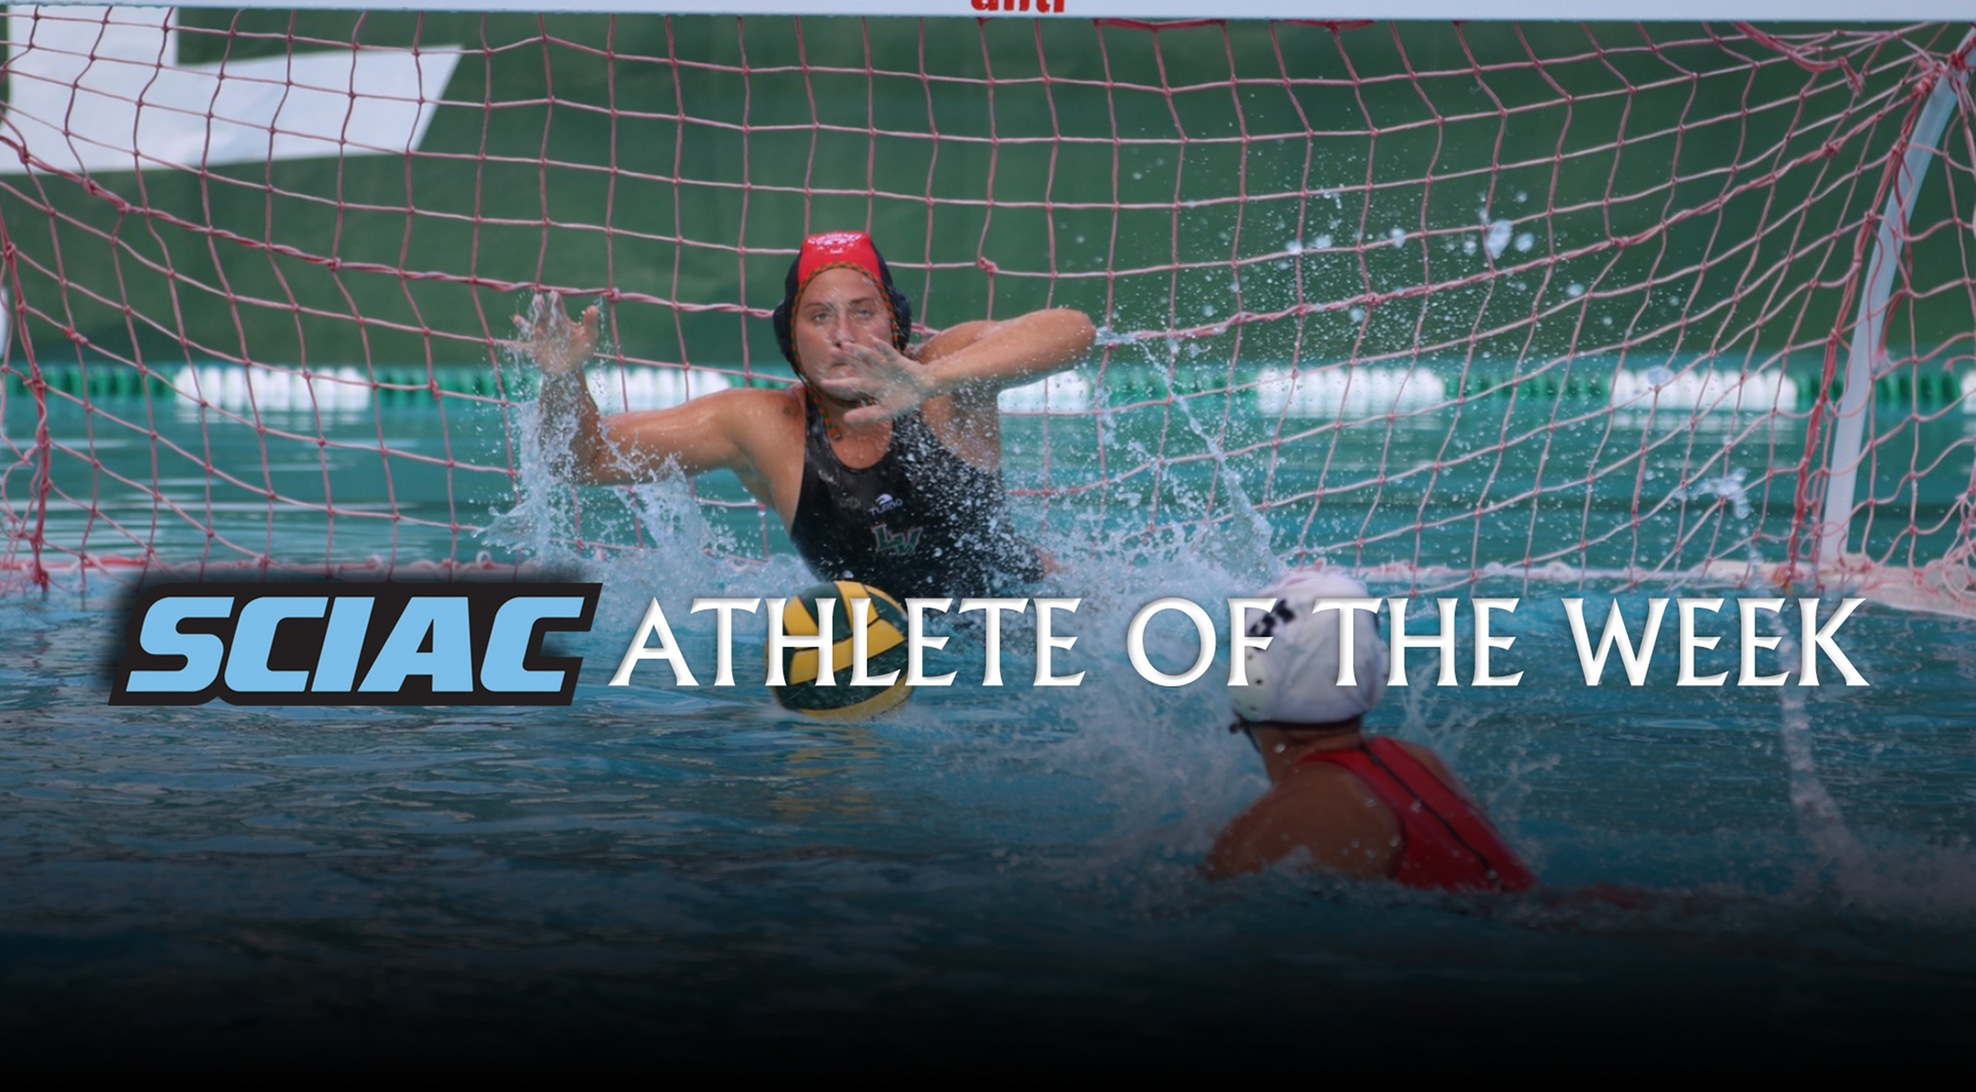 Garcia named SCIAC Athlete of the Week